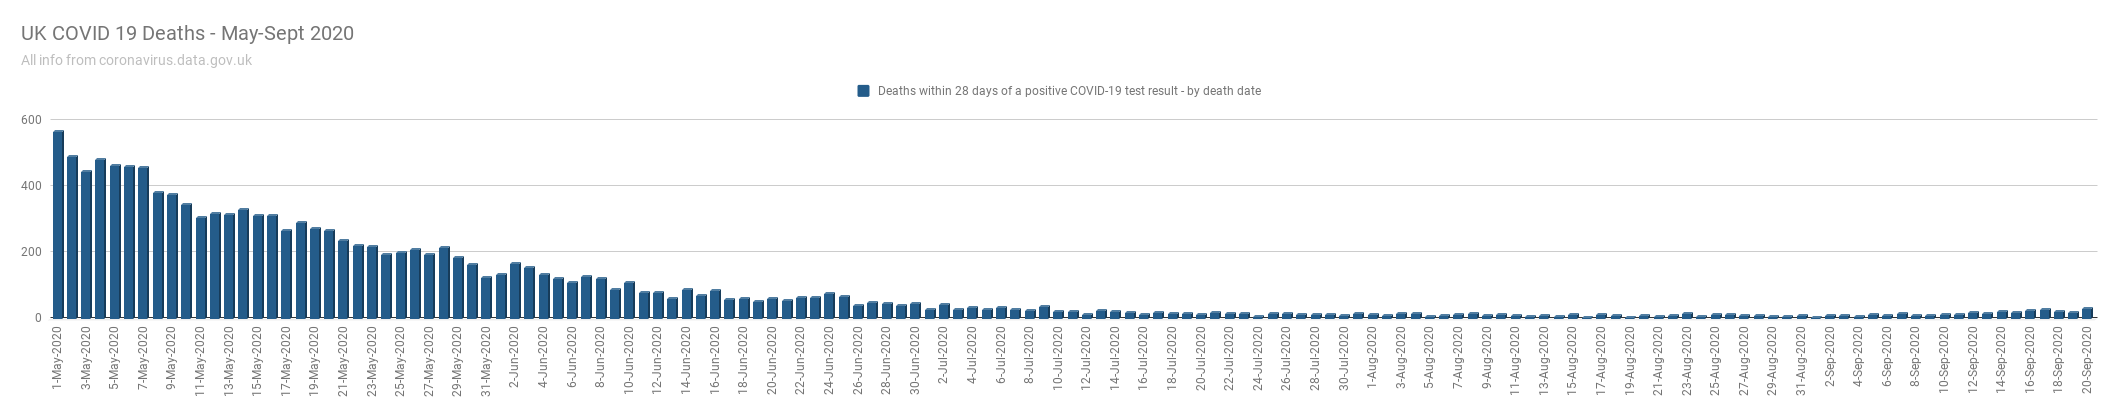 UK COVID 19 Deaths - May-Sept 2020